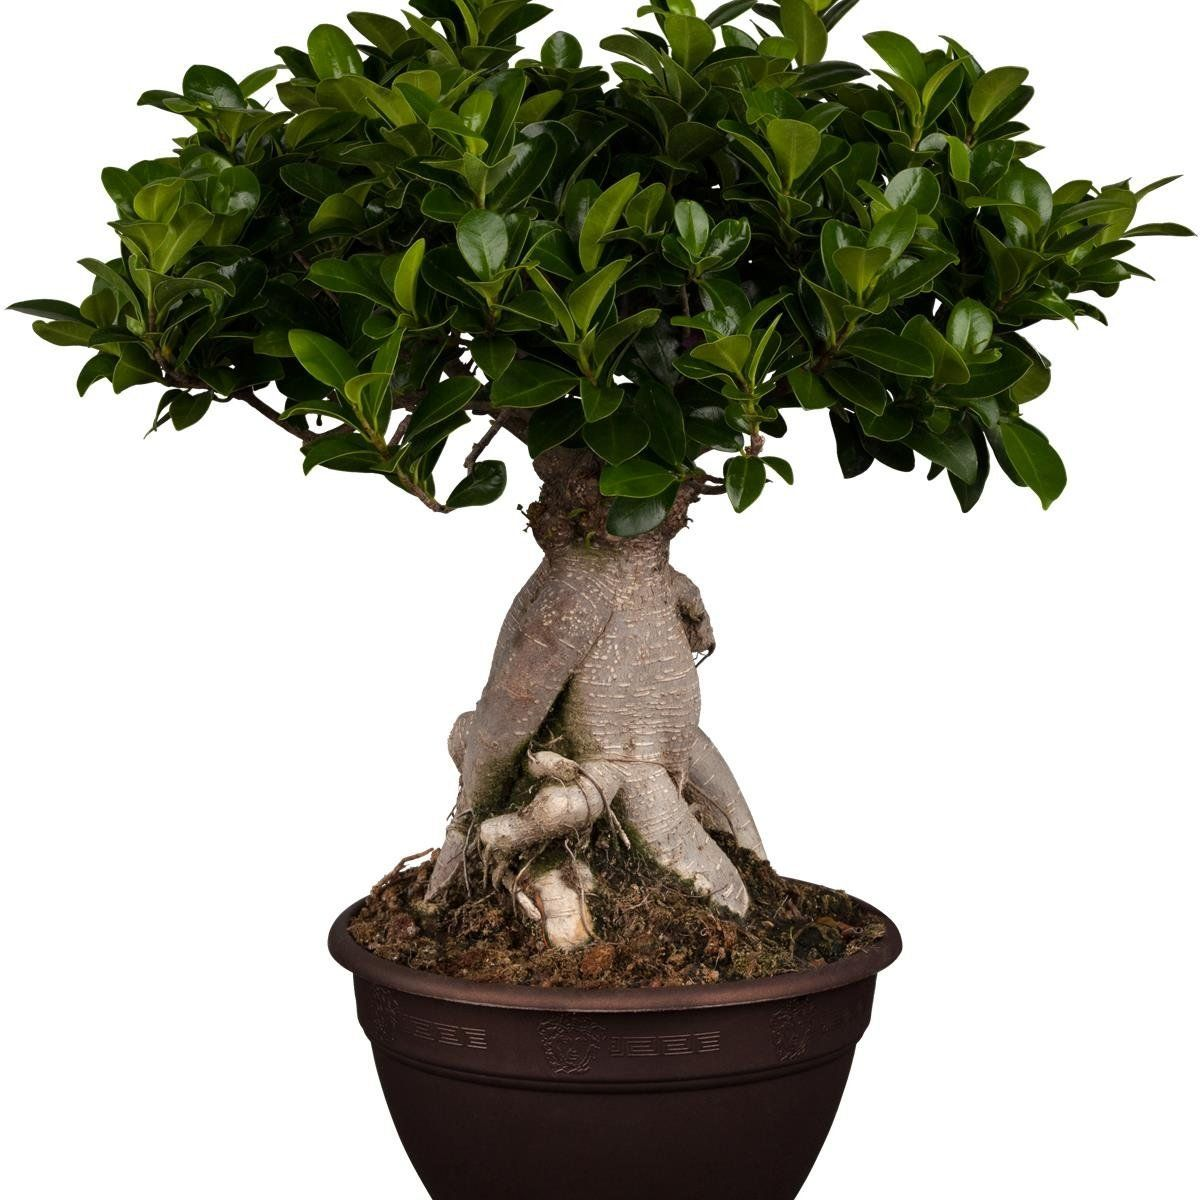 lorbeer feige ficus mic ginseng 8cm topf 1 pflanze garten interior plants. Black Bedroom Furniture Sets. Home Design Ideas